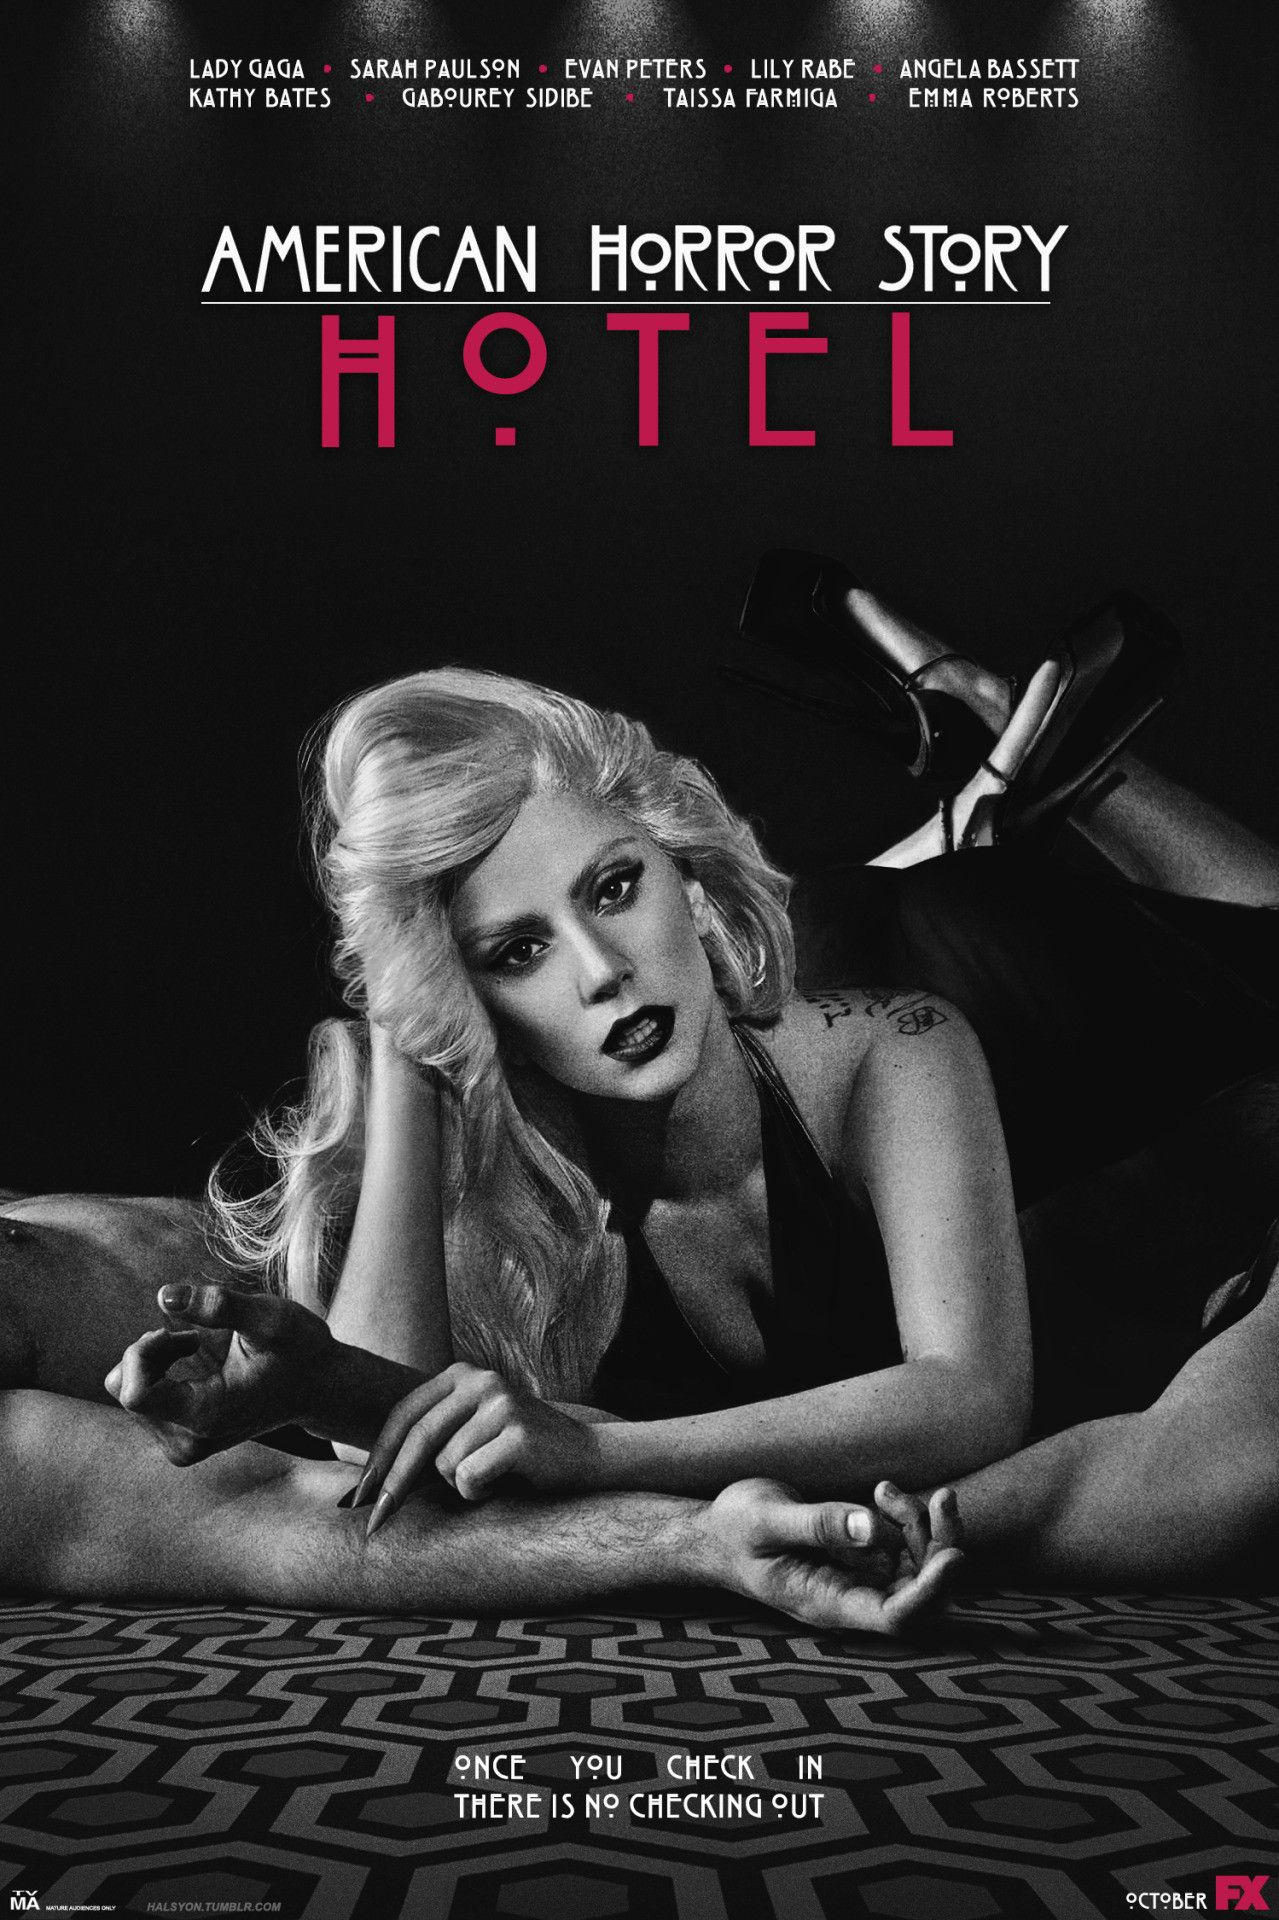 American Horror Story Hotel Wallpaper 75 Images Lady Gaga